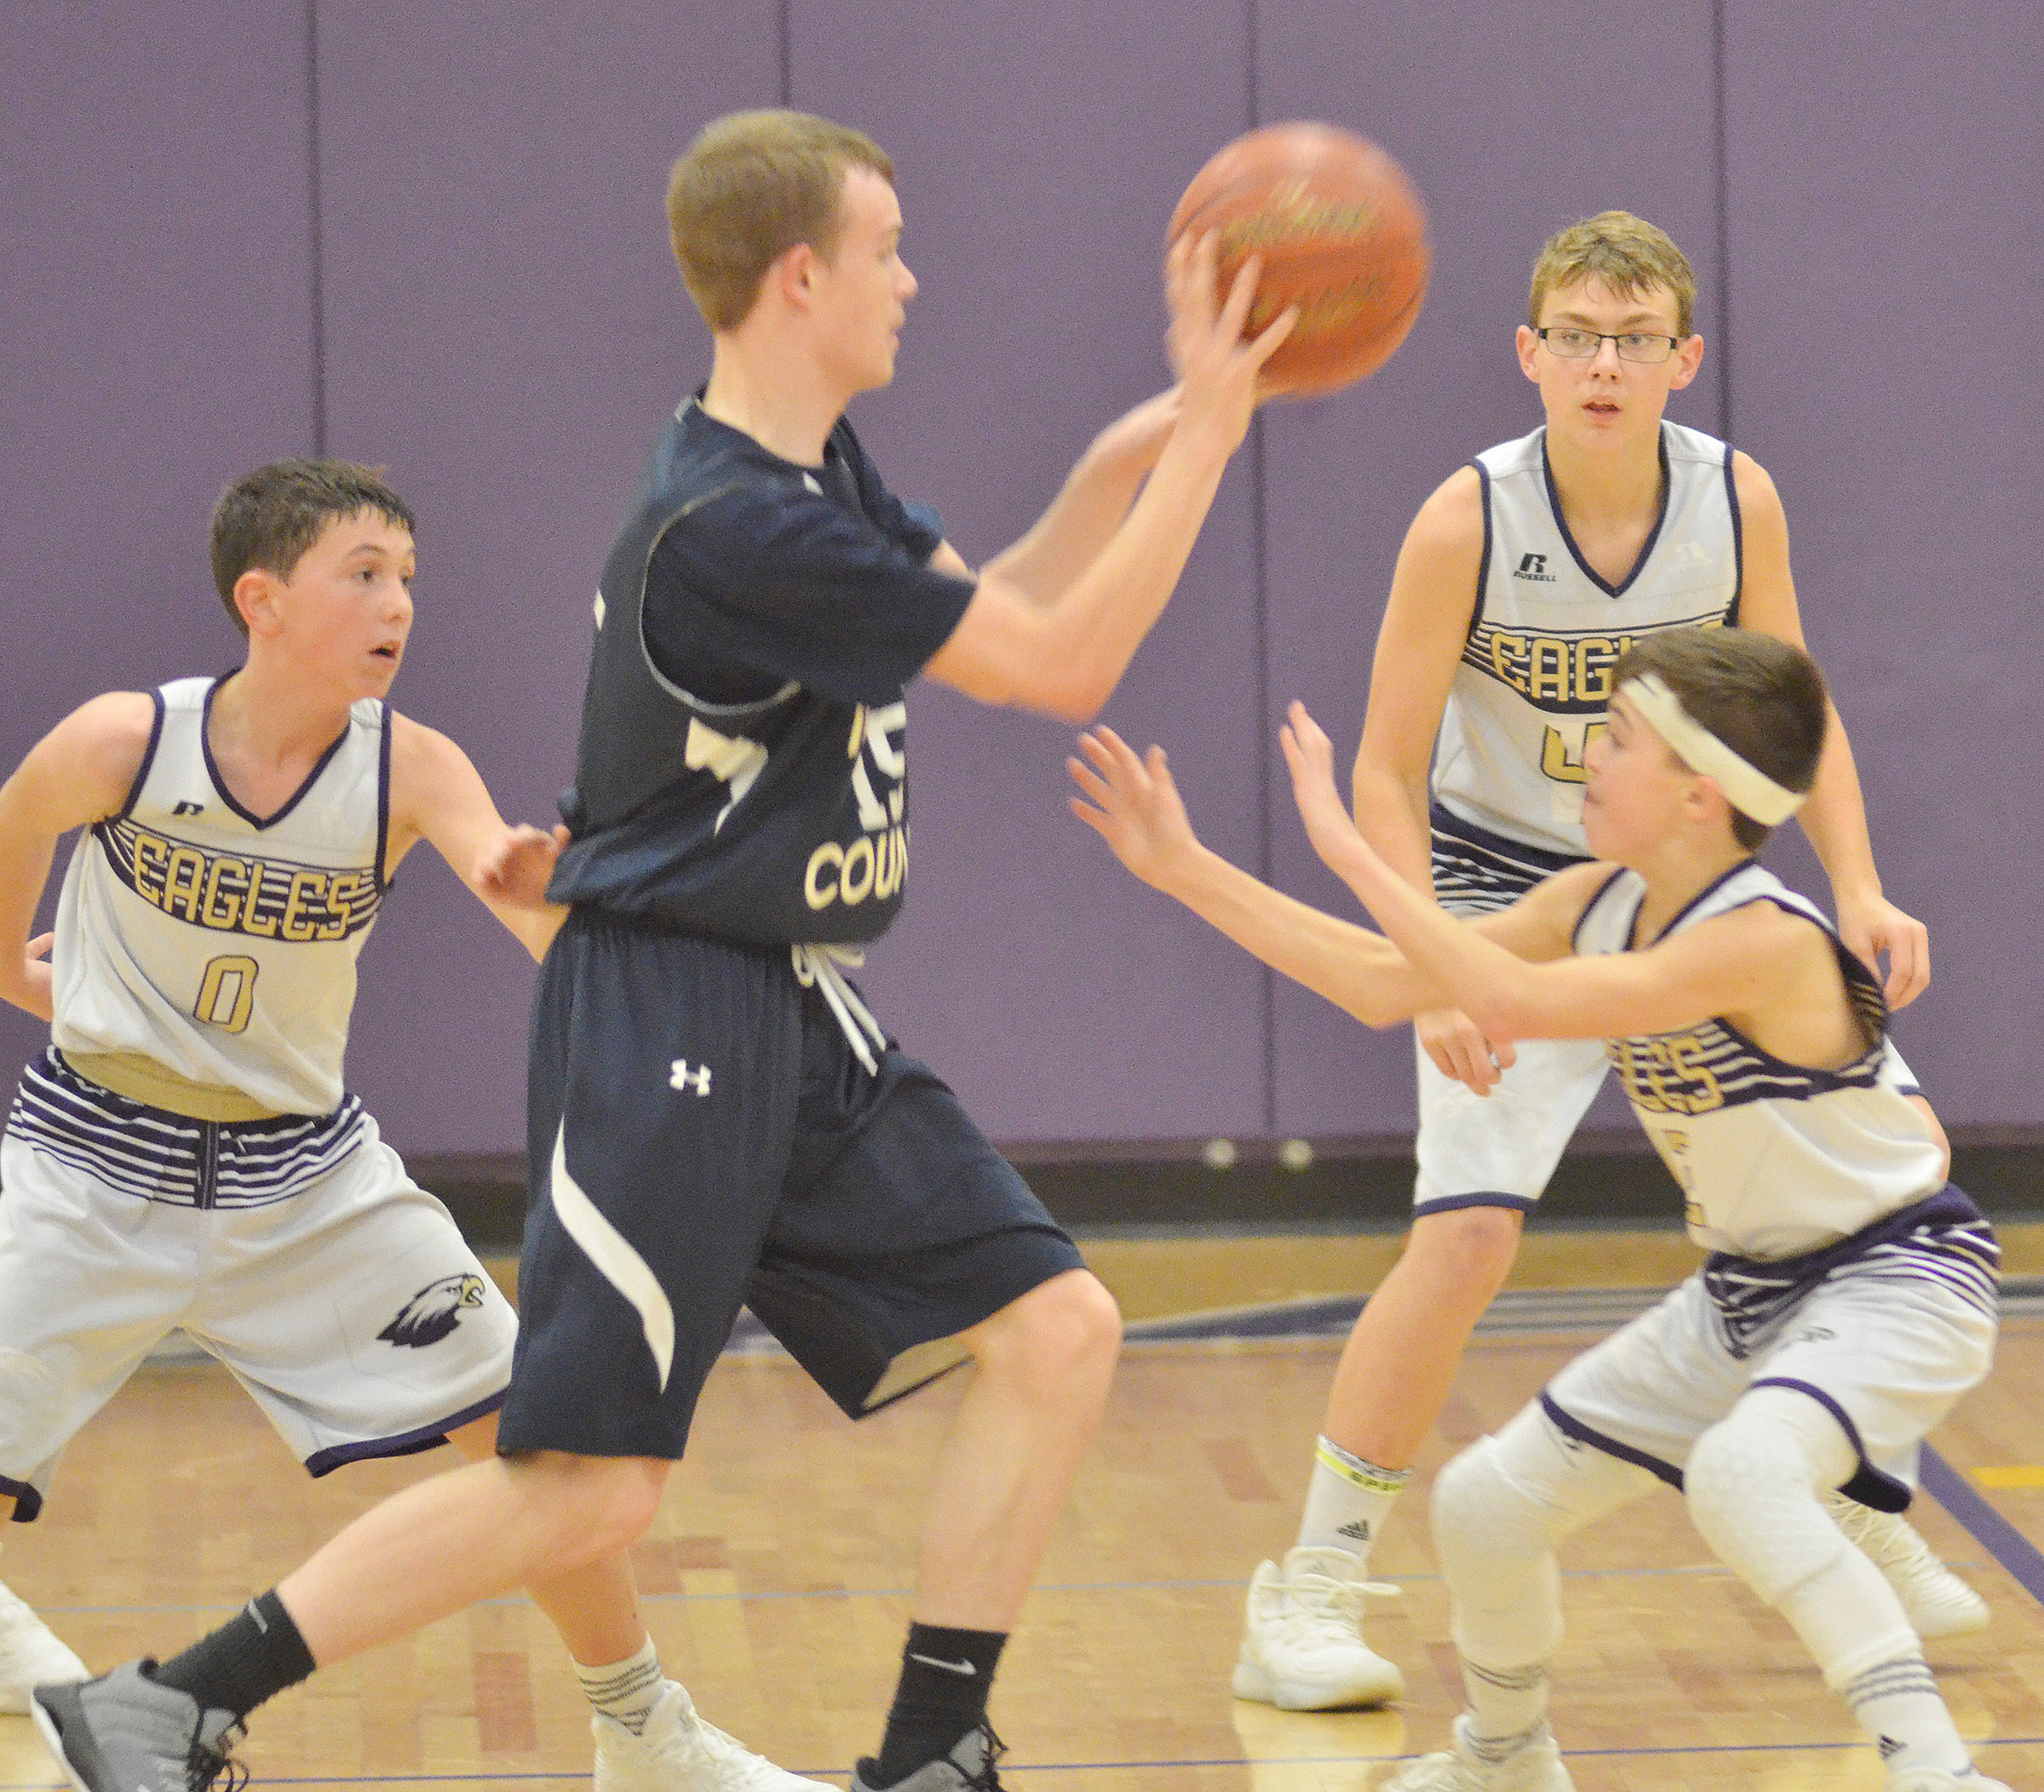 From left, CMS eighth-graders Brice Spaw and Jarred and seventh-grader Chase Hord play defense.